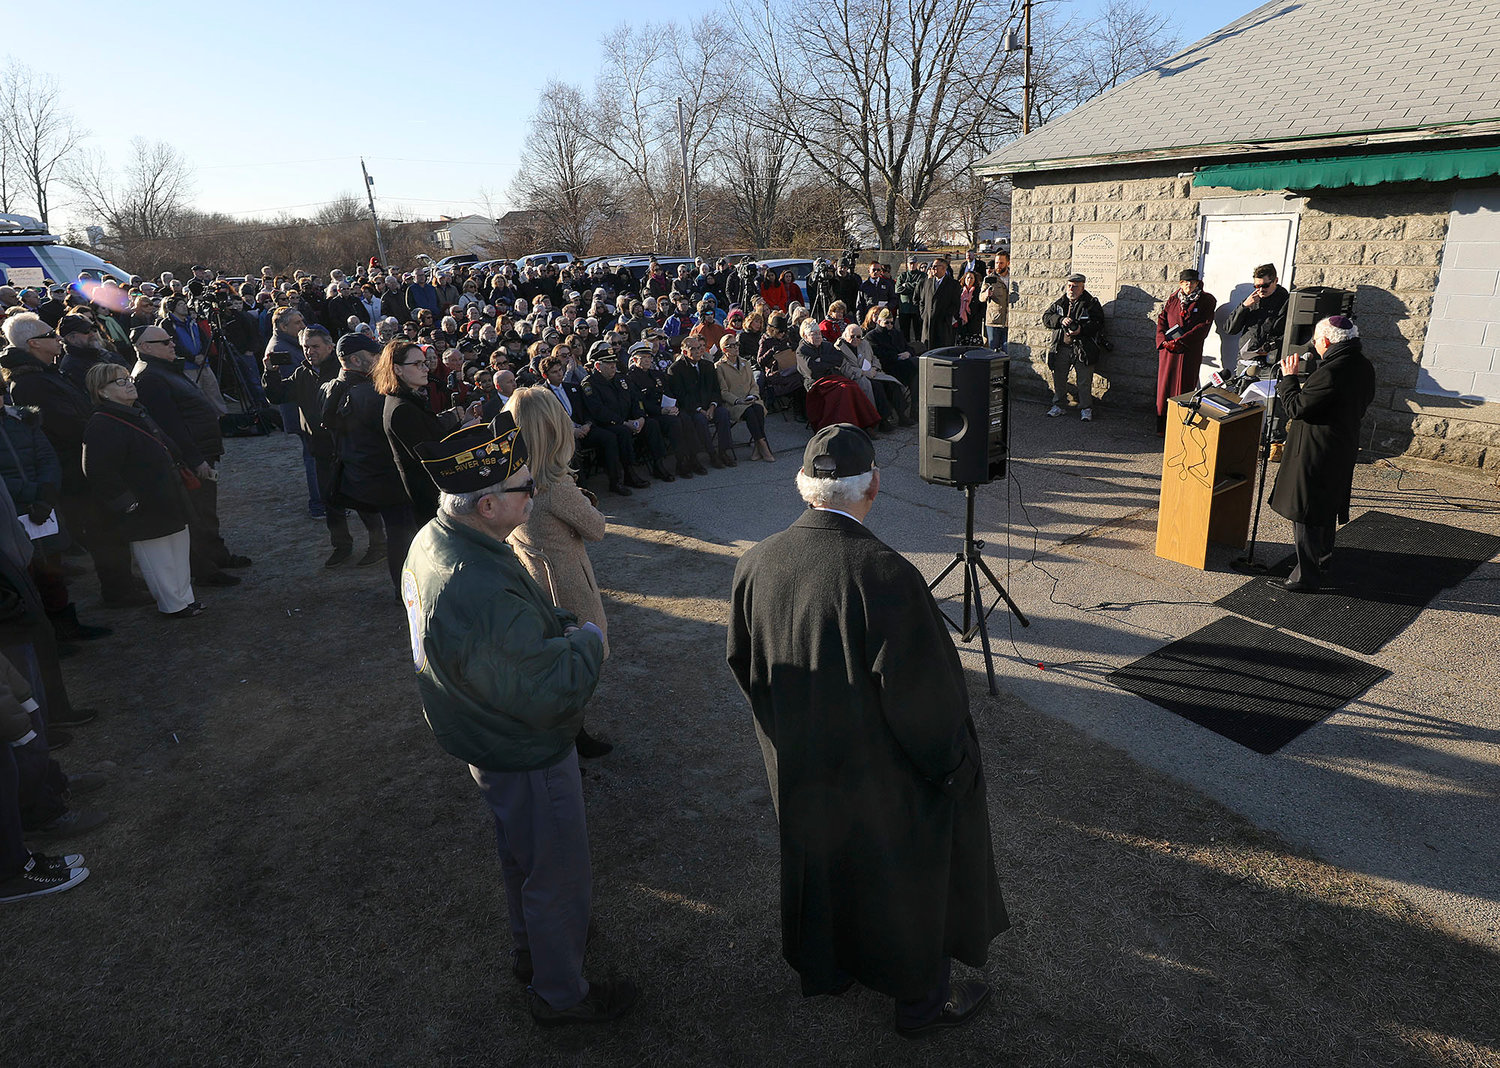 Ceremony/vigil after recent anti-Semitic vandalism at the Fall River Hebrew Cemetery.